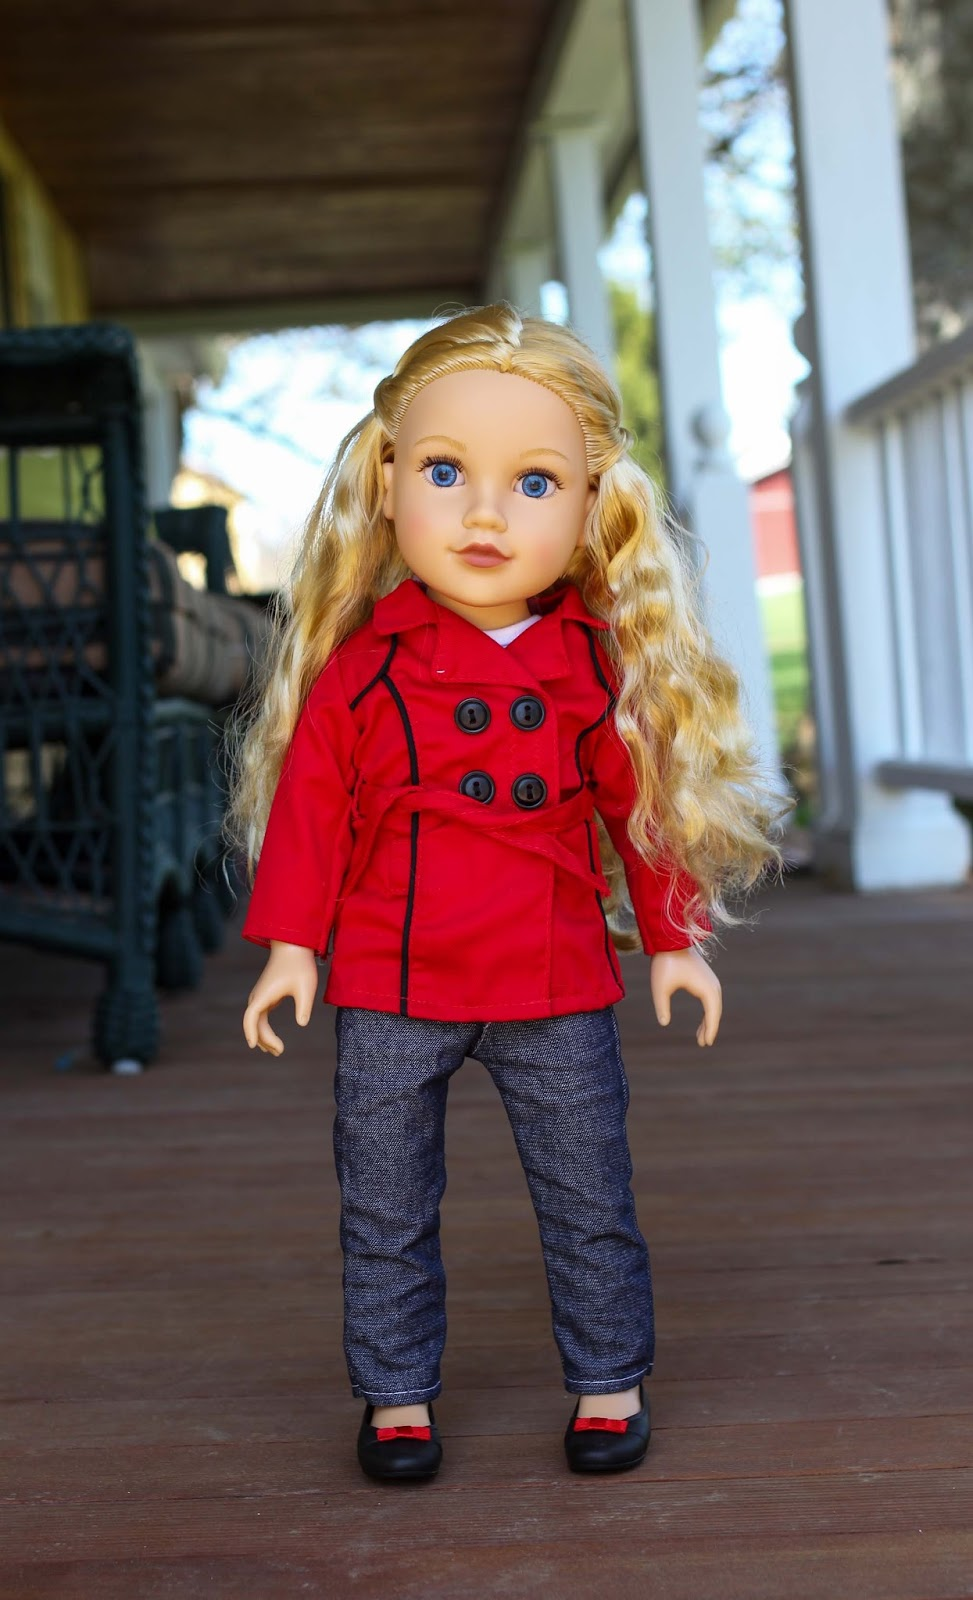 f22ee0a31a1 After discovering JGKelsey's lovely blog, I was introduced to the Journey  Girls doll line from Toys R Us. Her blog has the most beautiful photography  as ...